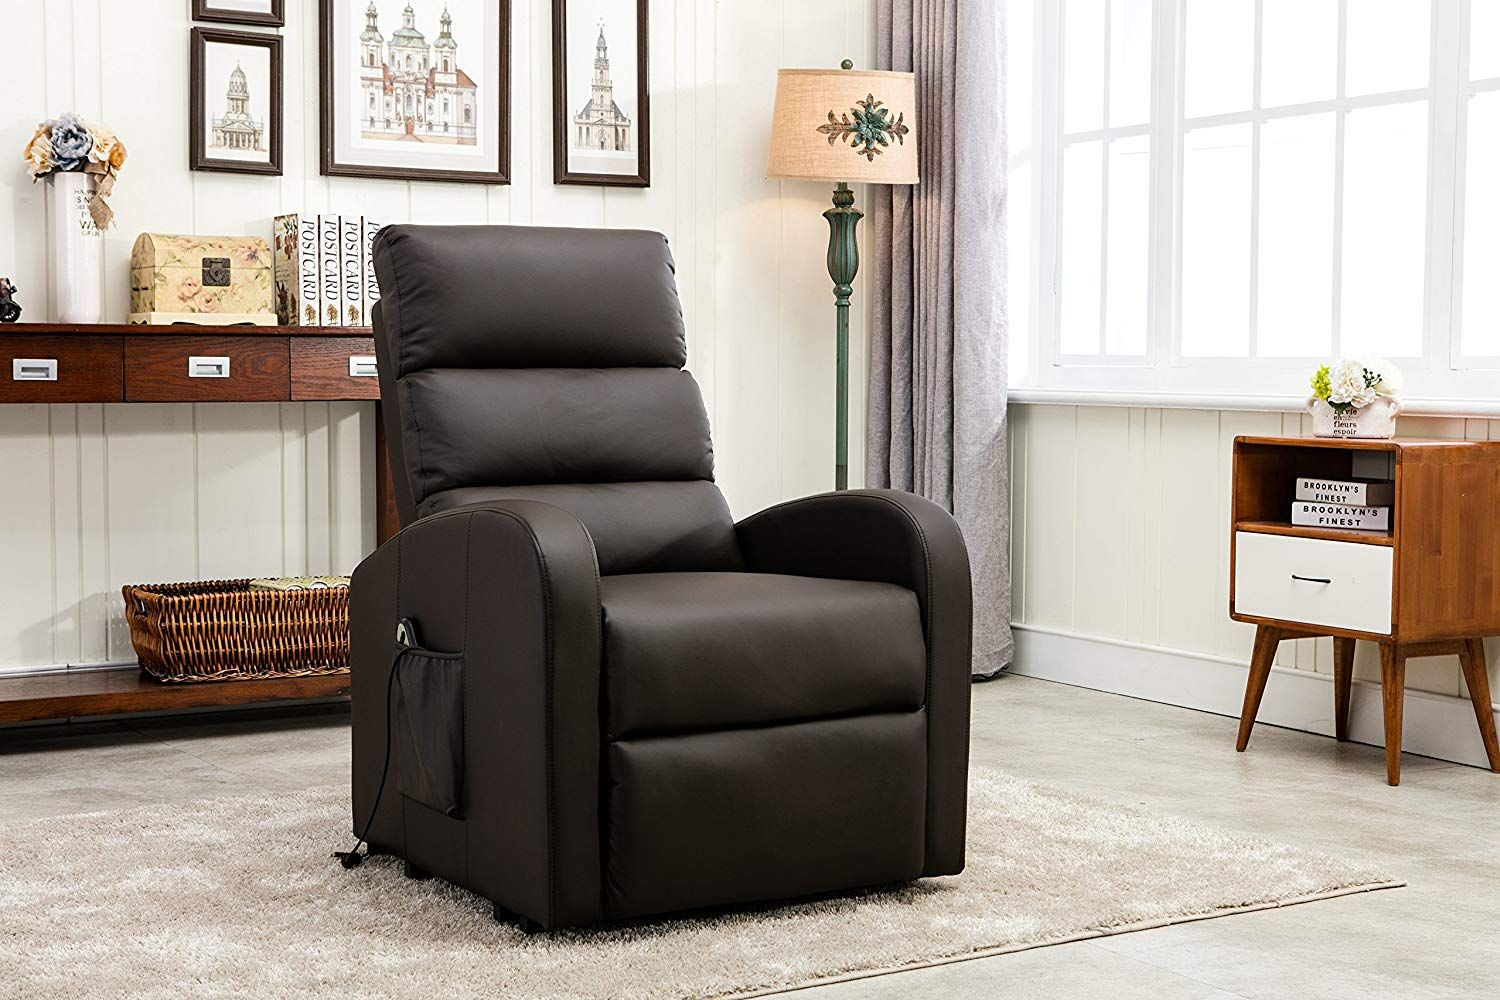 Fantastic Best Recliners The Top 10 Reclining Chairs Of 2019 Creativecarmelina Interior Chair Design Creativecarmelinacom